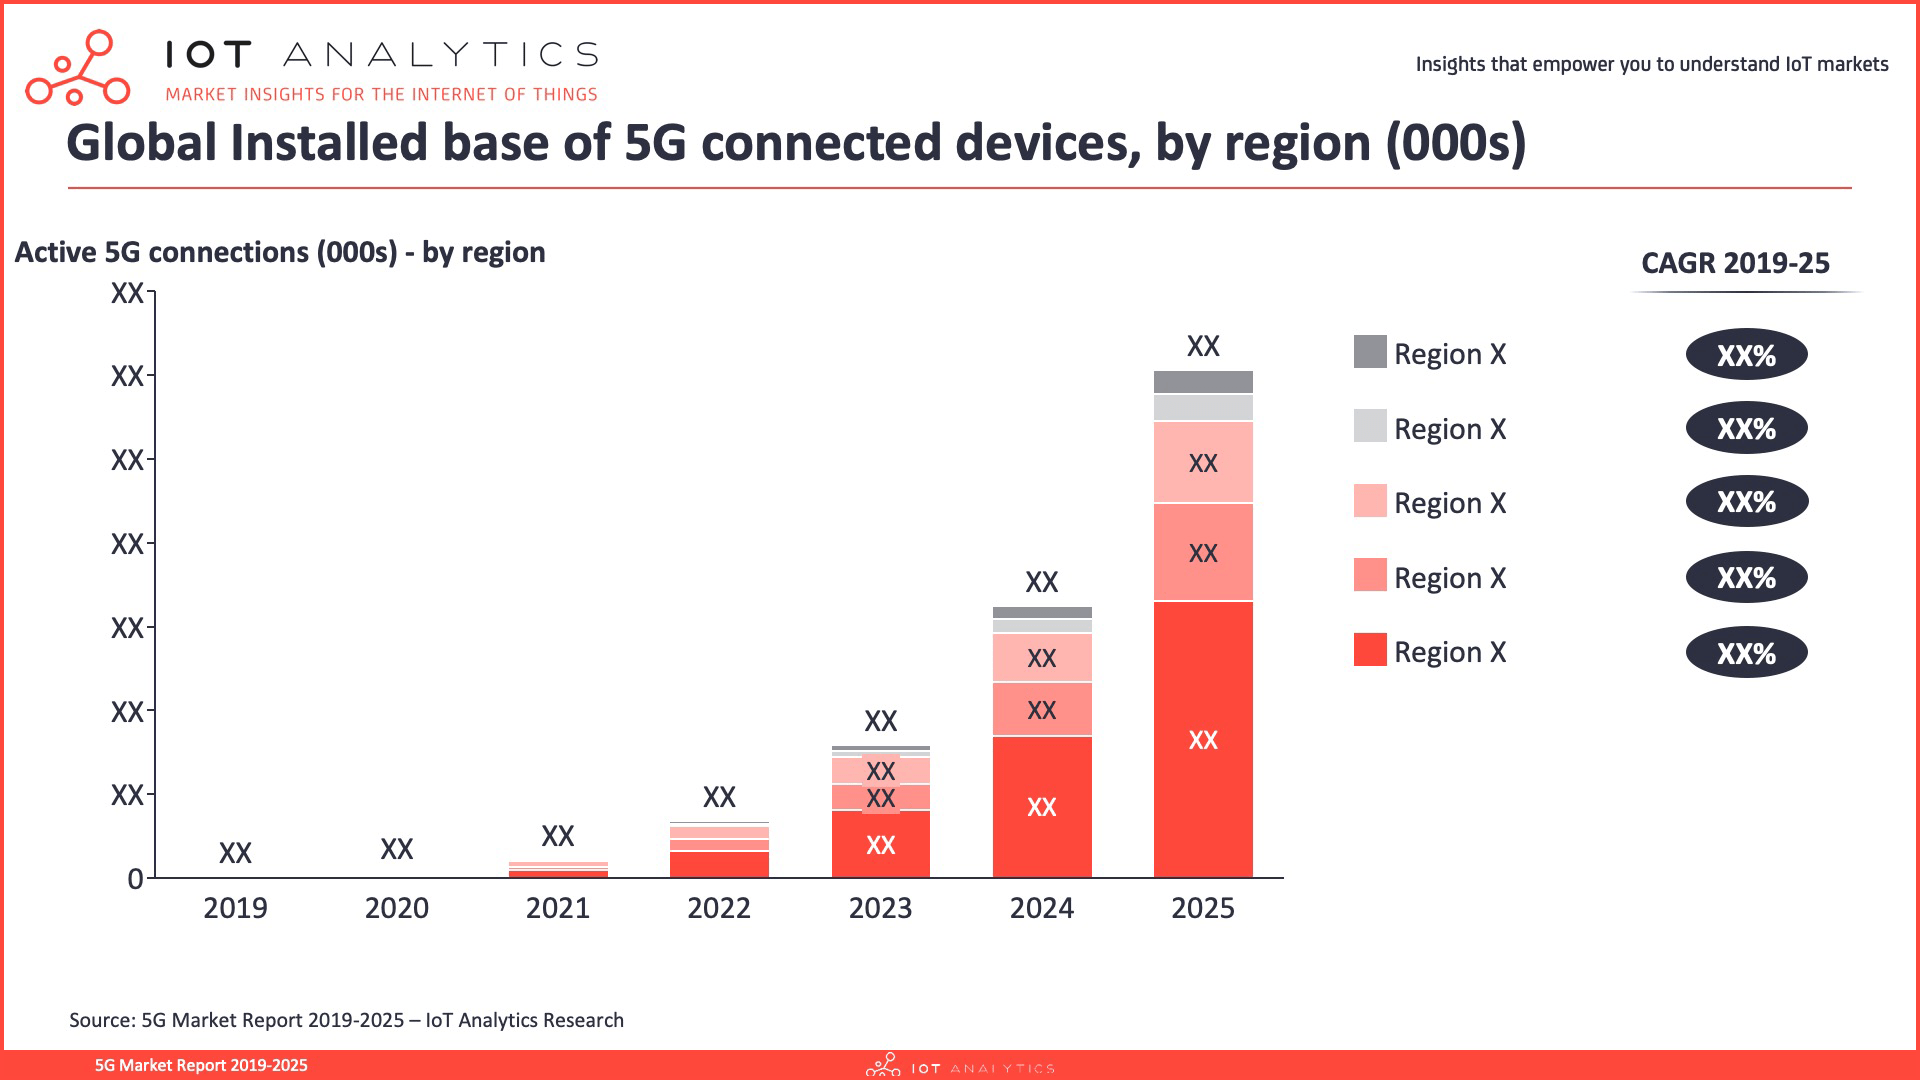 5G Market Report 2019-2025 - 5G connected devices by region